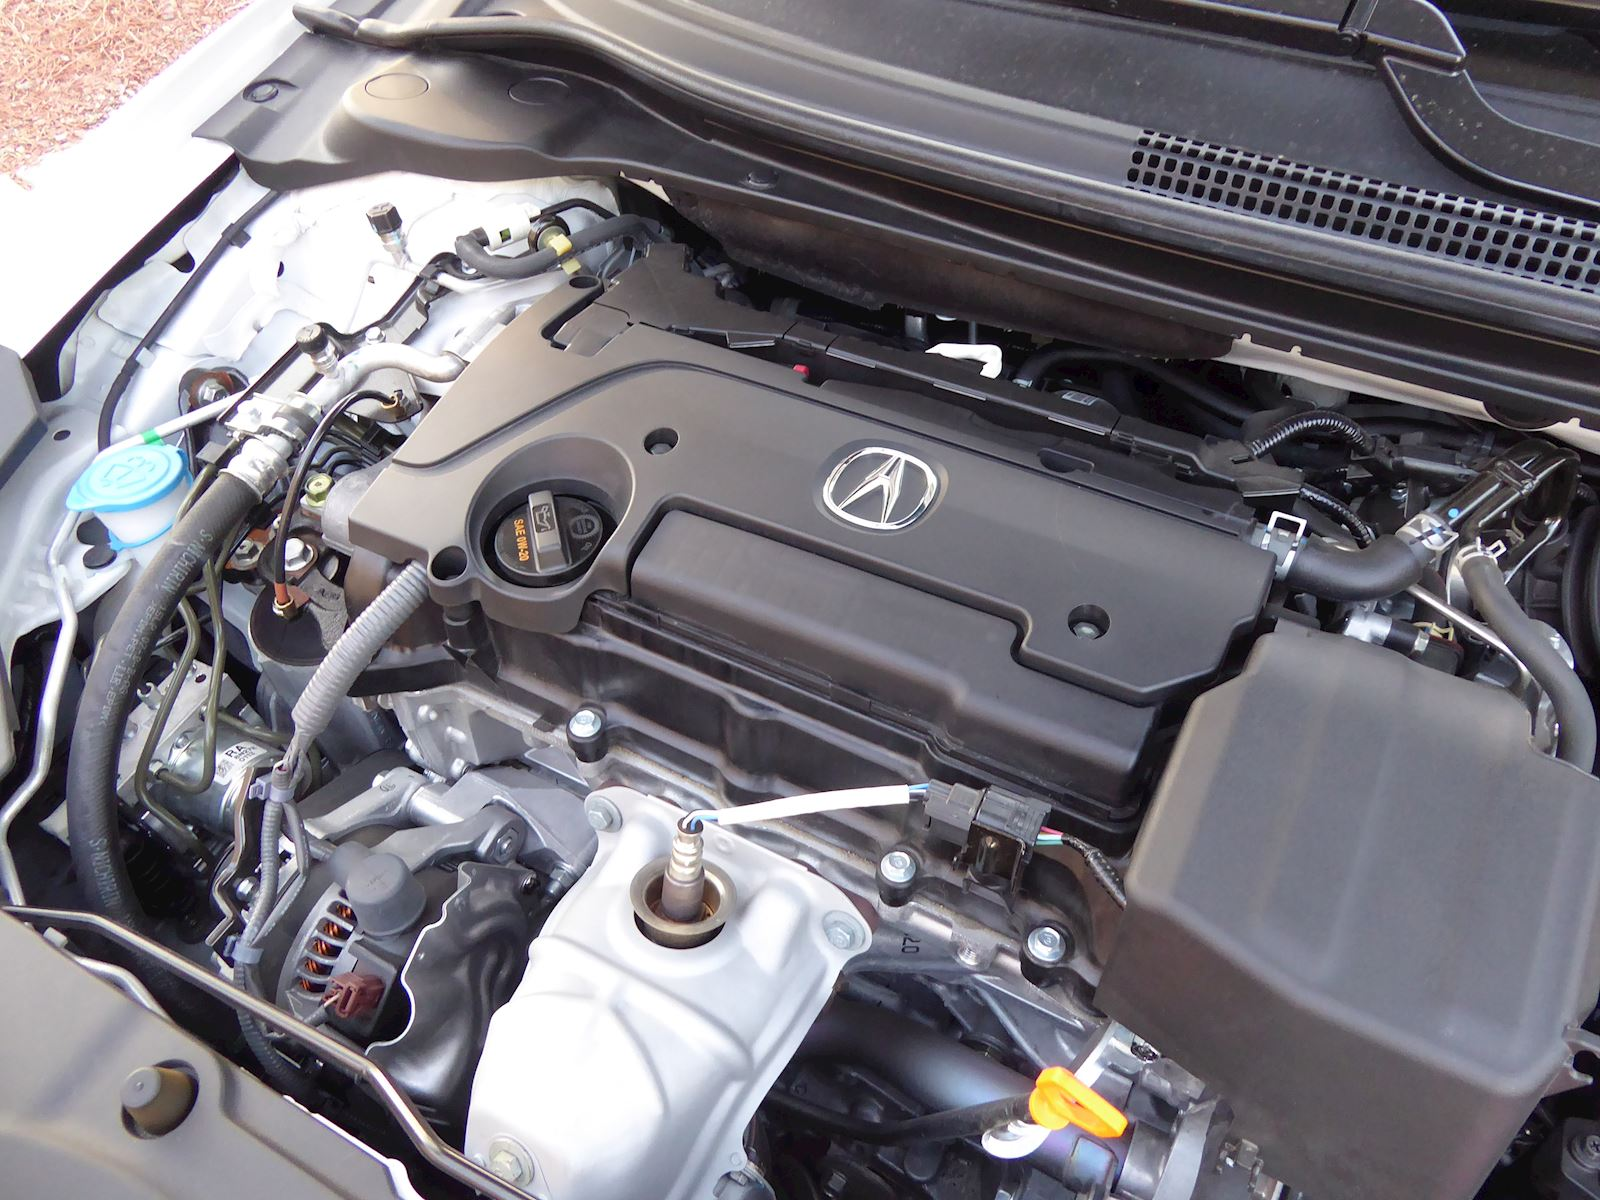 2020 Acura ILX Engine/Transmission